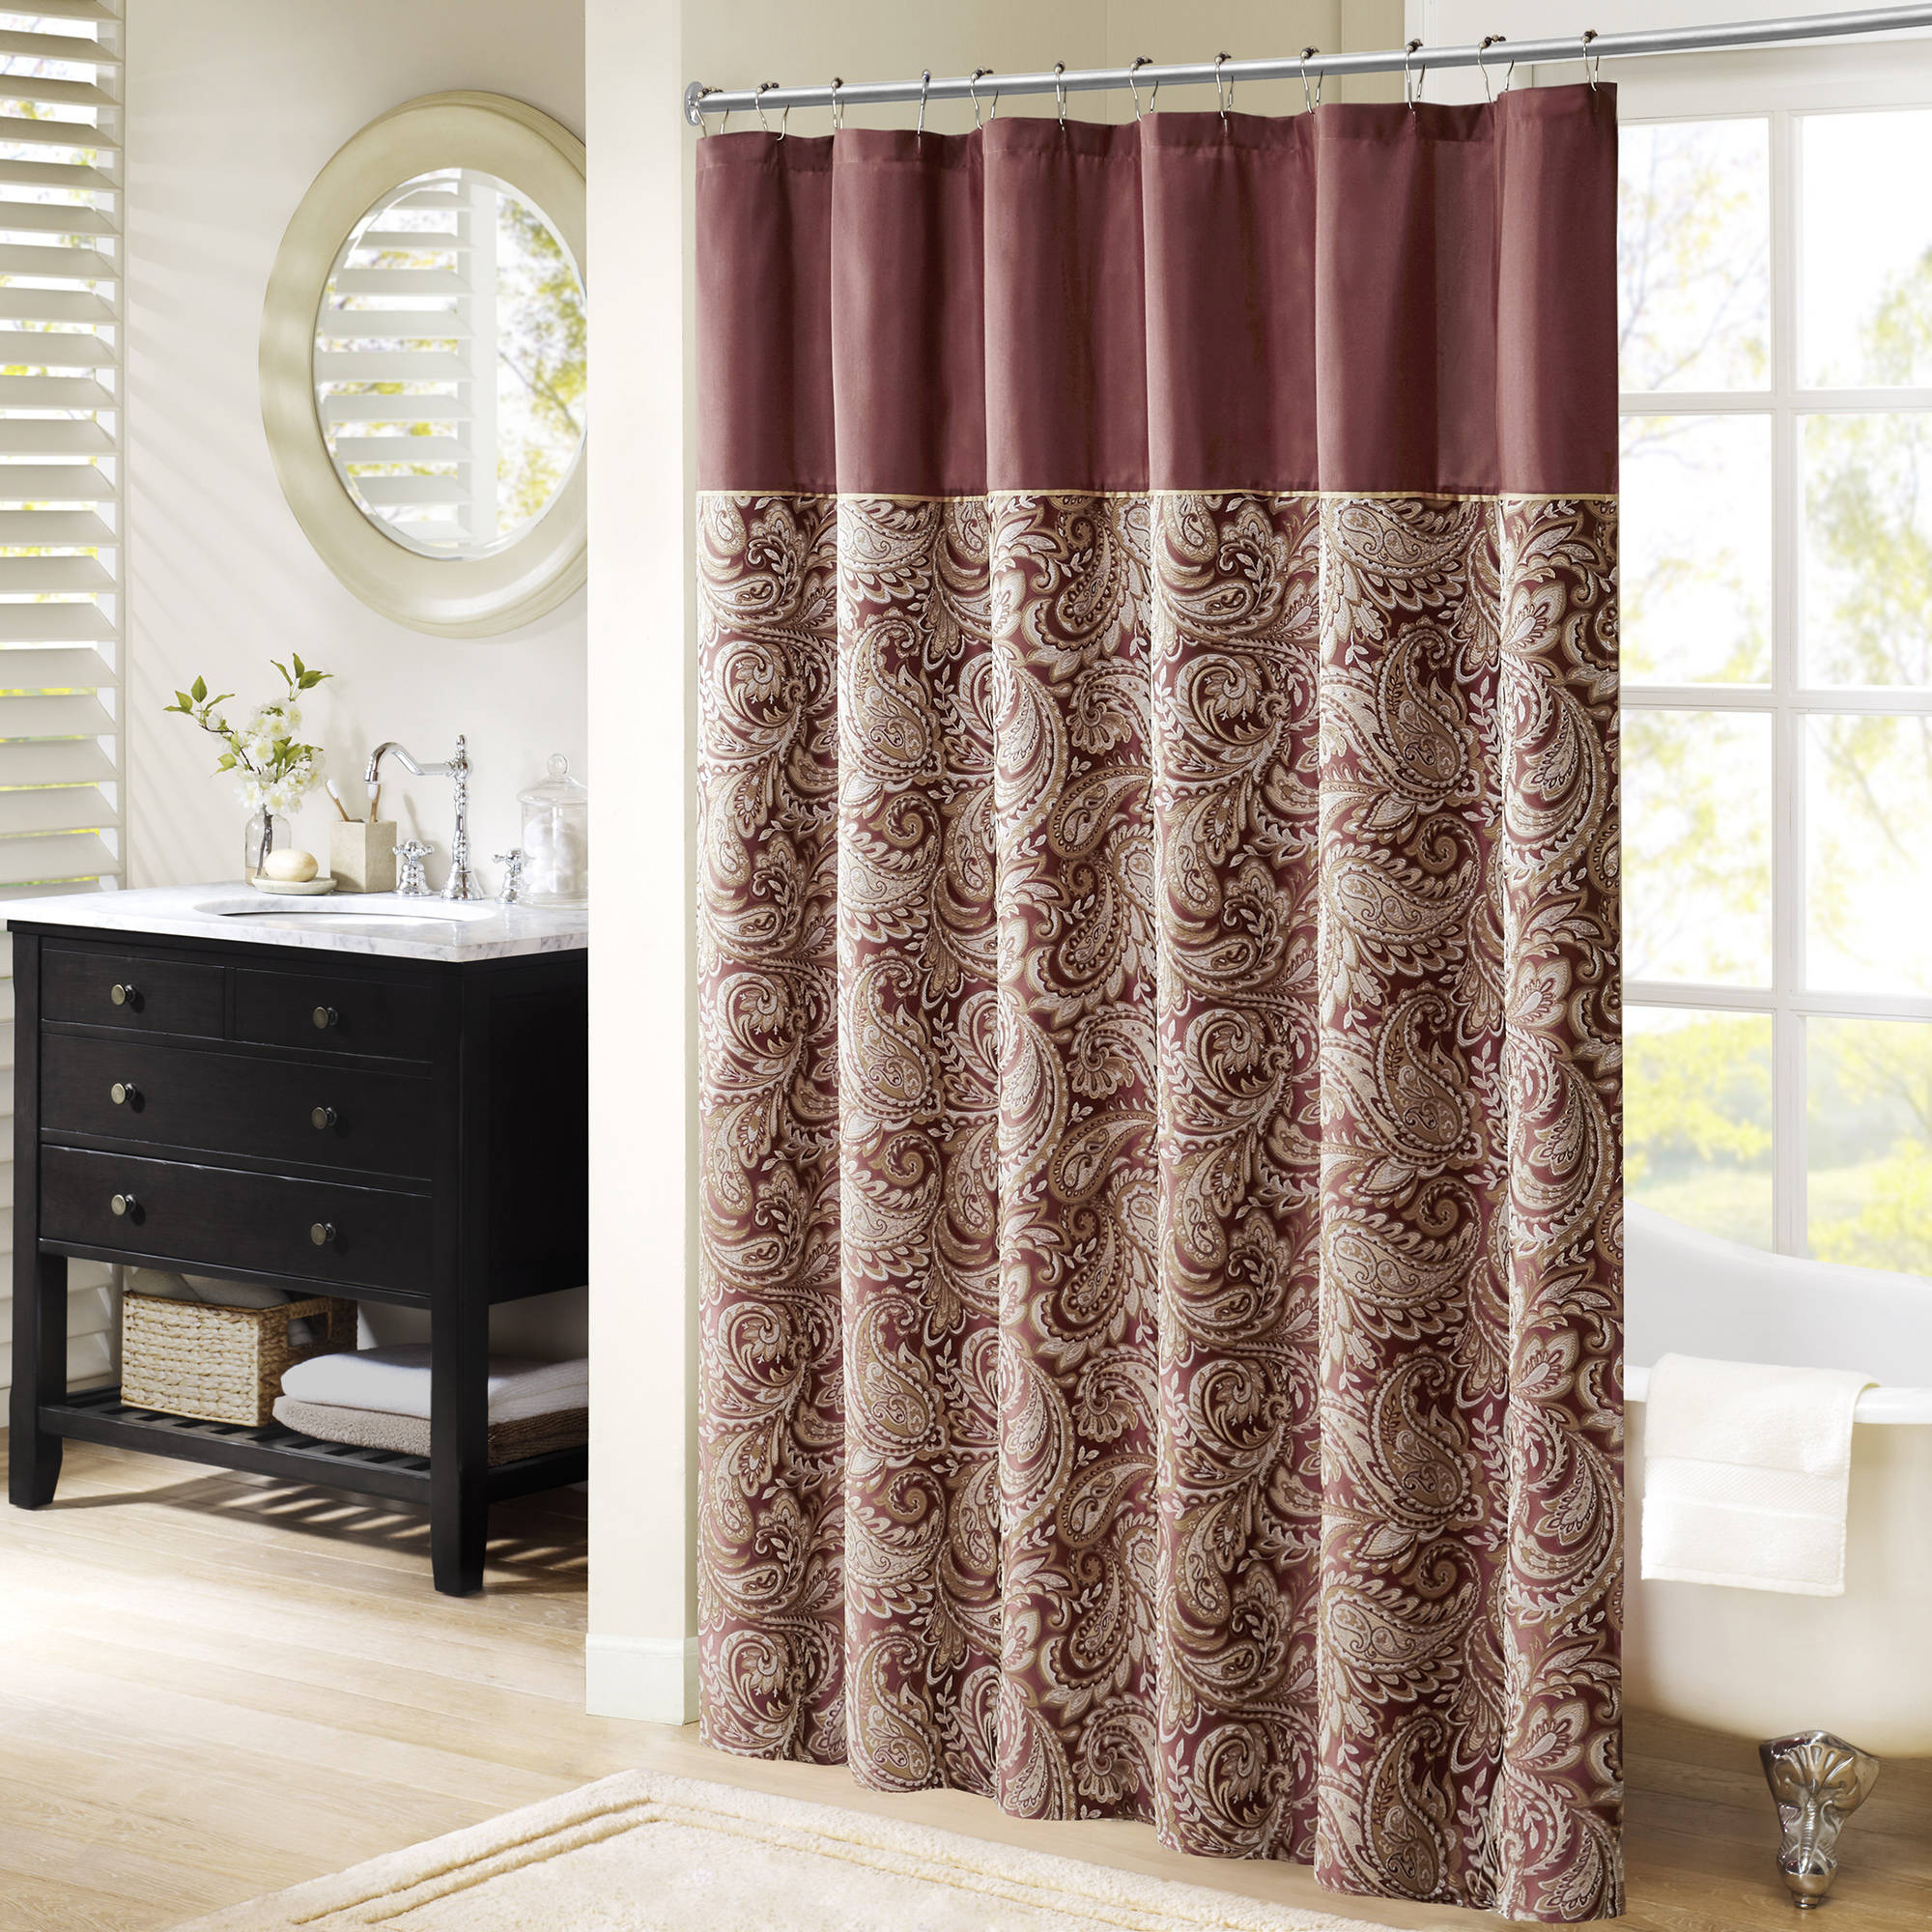 Shower Curtains Walmartcom - Black and gold stripe drapery fabric